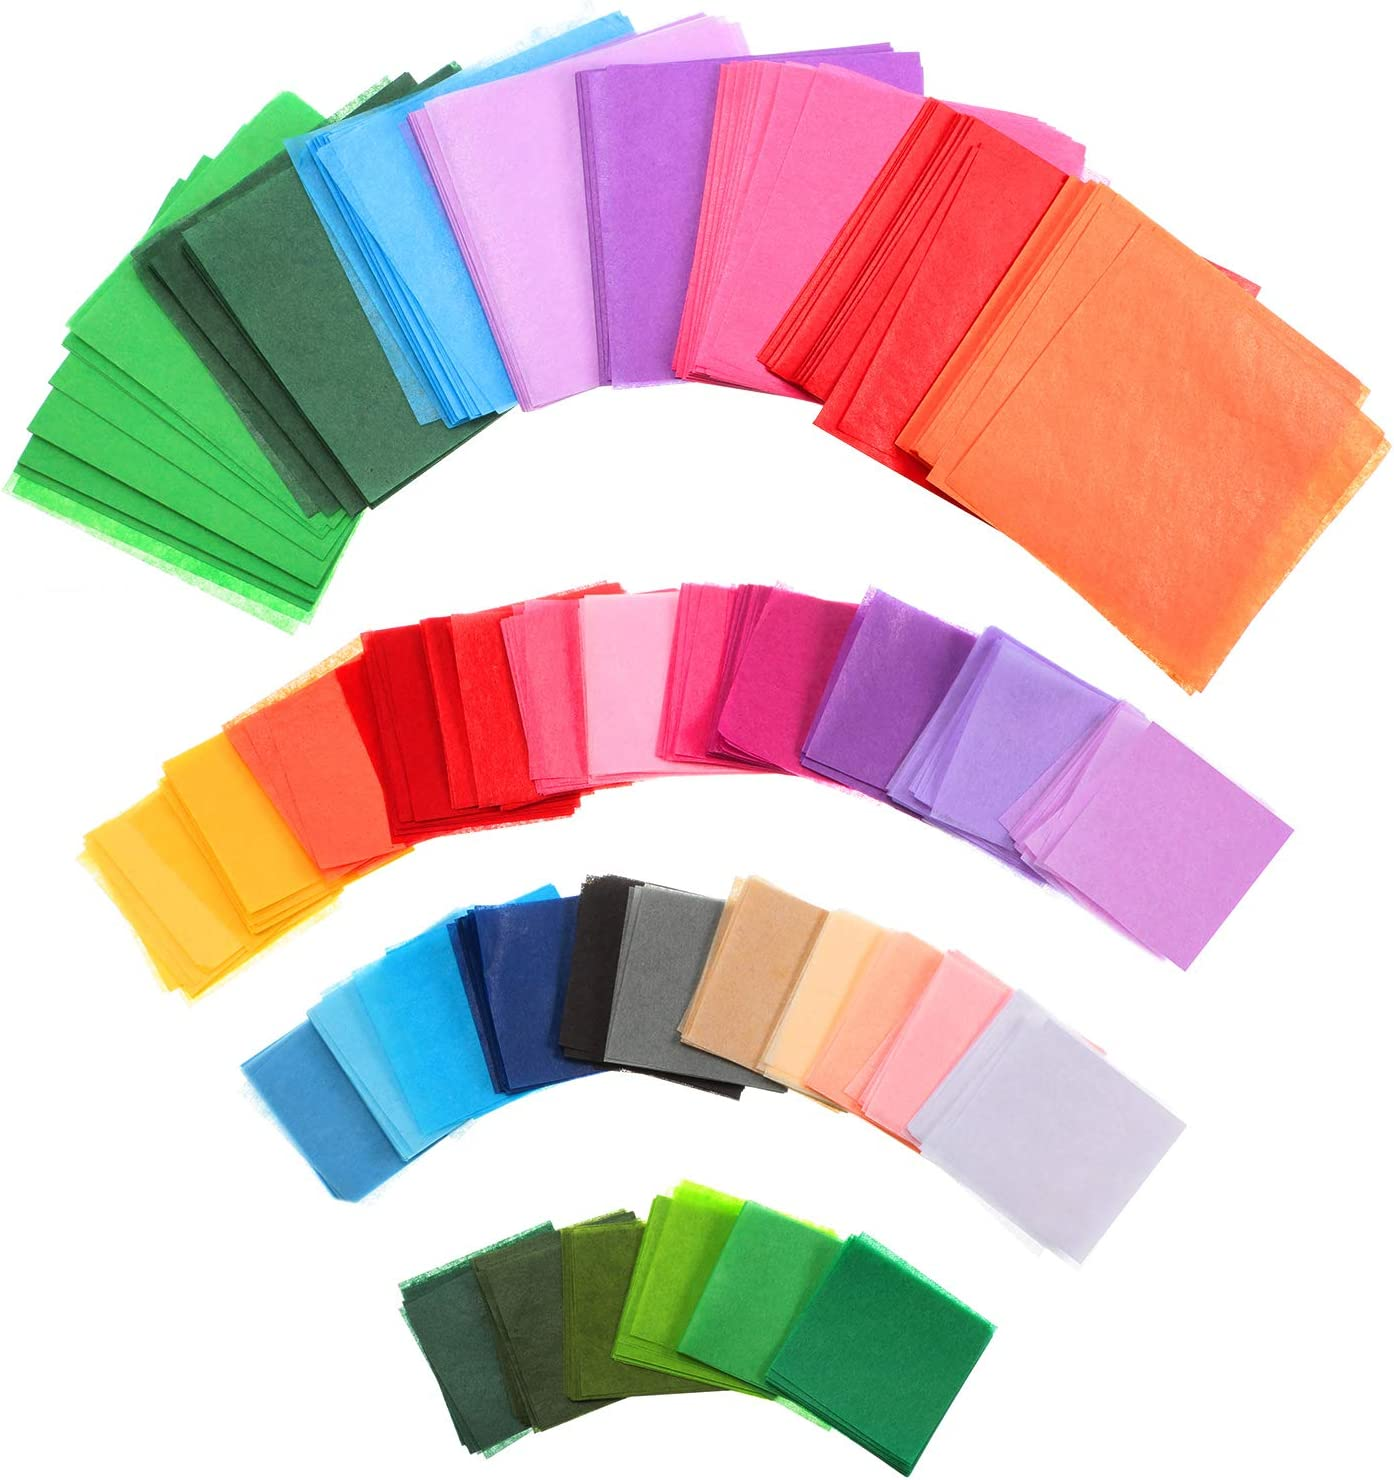 1 Inch and 2 Inches 7800 Pieces Tissue Paper Squares Bulk 30 Assorted Colors Gift Tissue Paper for Arts Craft DIY Scrapbooking Scrunch Art